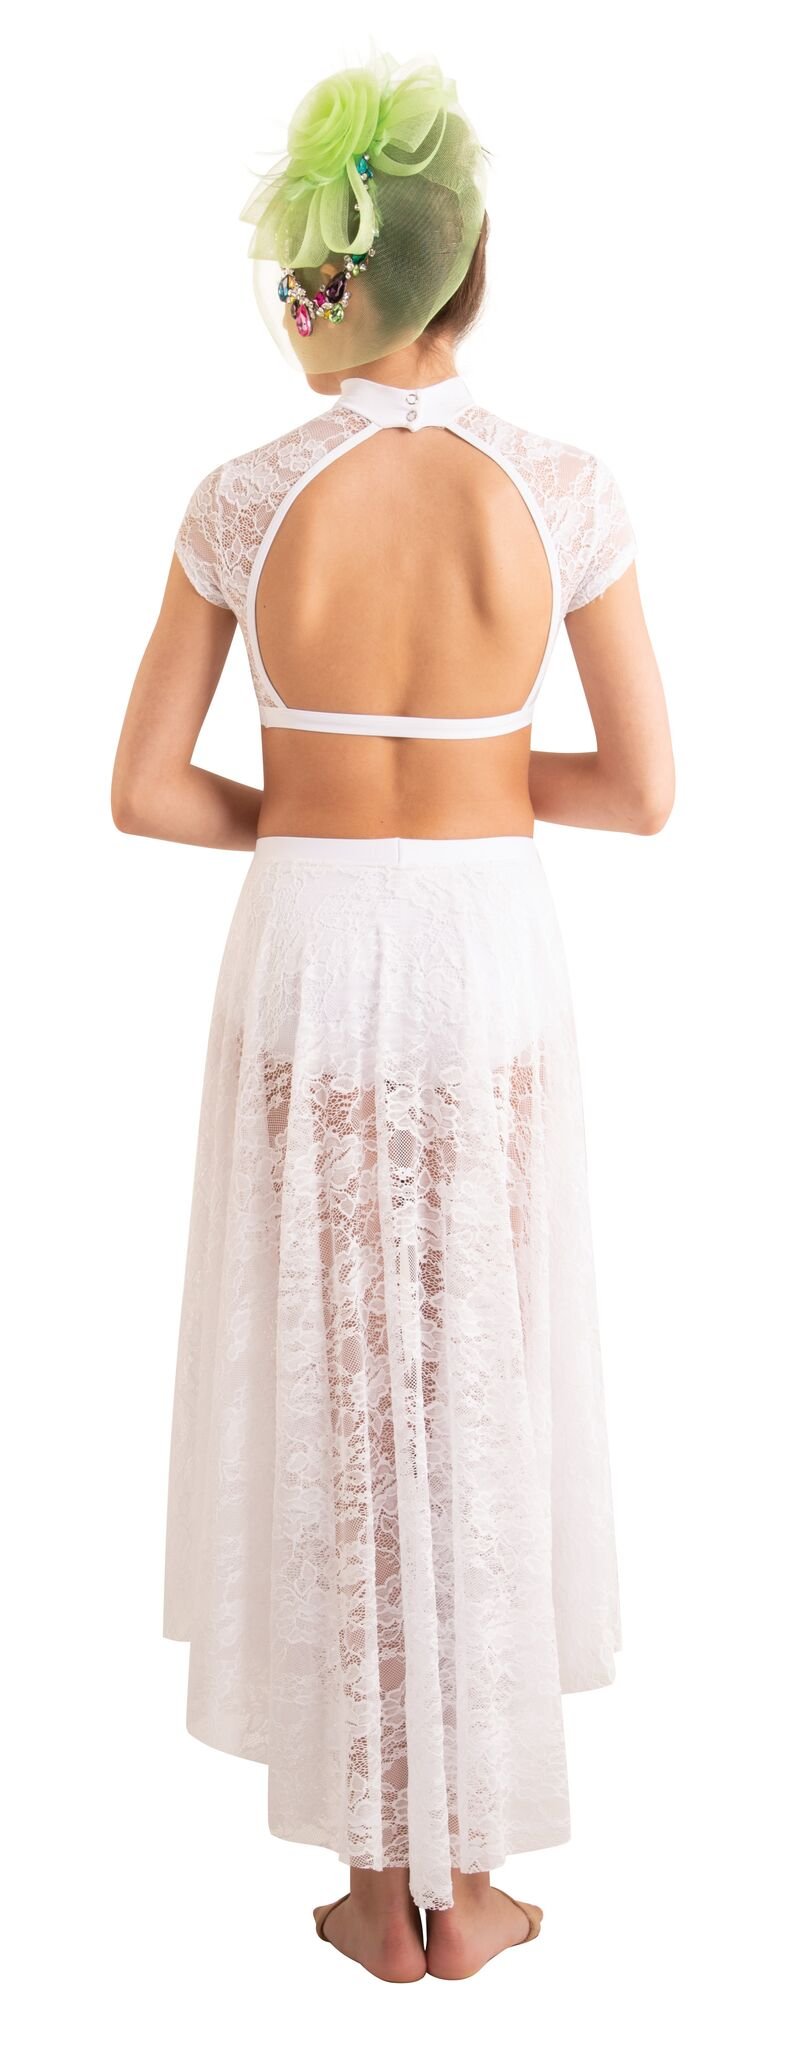 Lace Convertible Long Side-to-Front Skirt by Body Wrappers